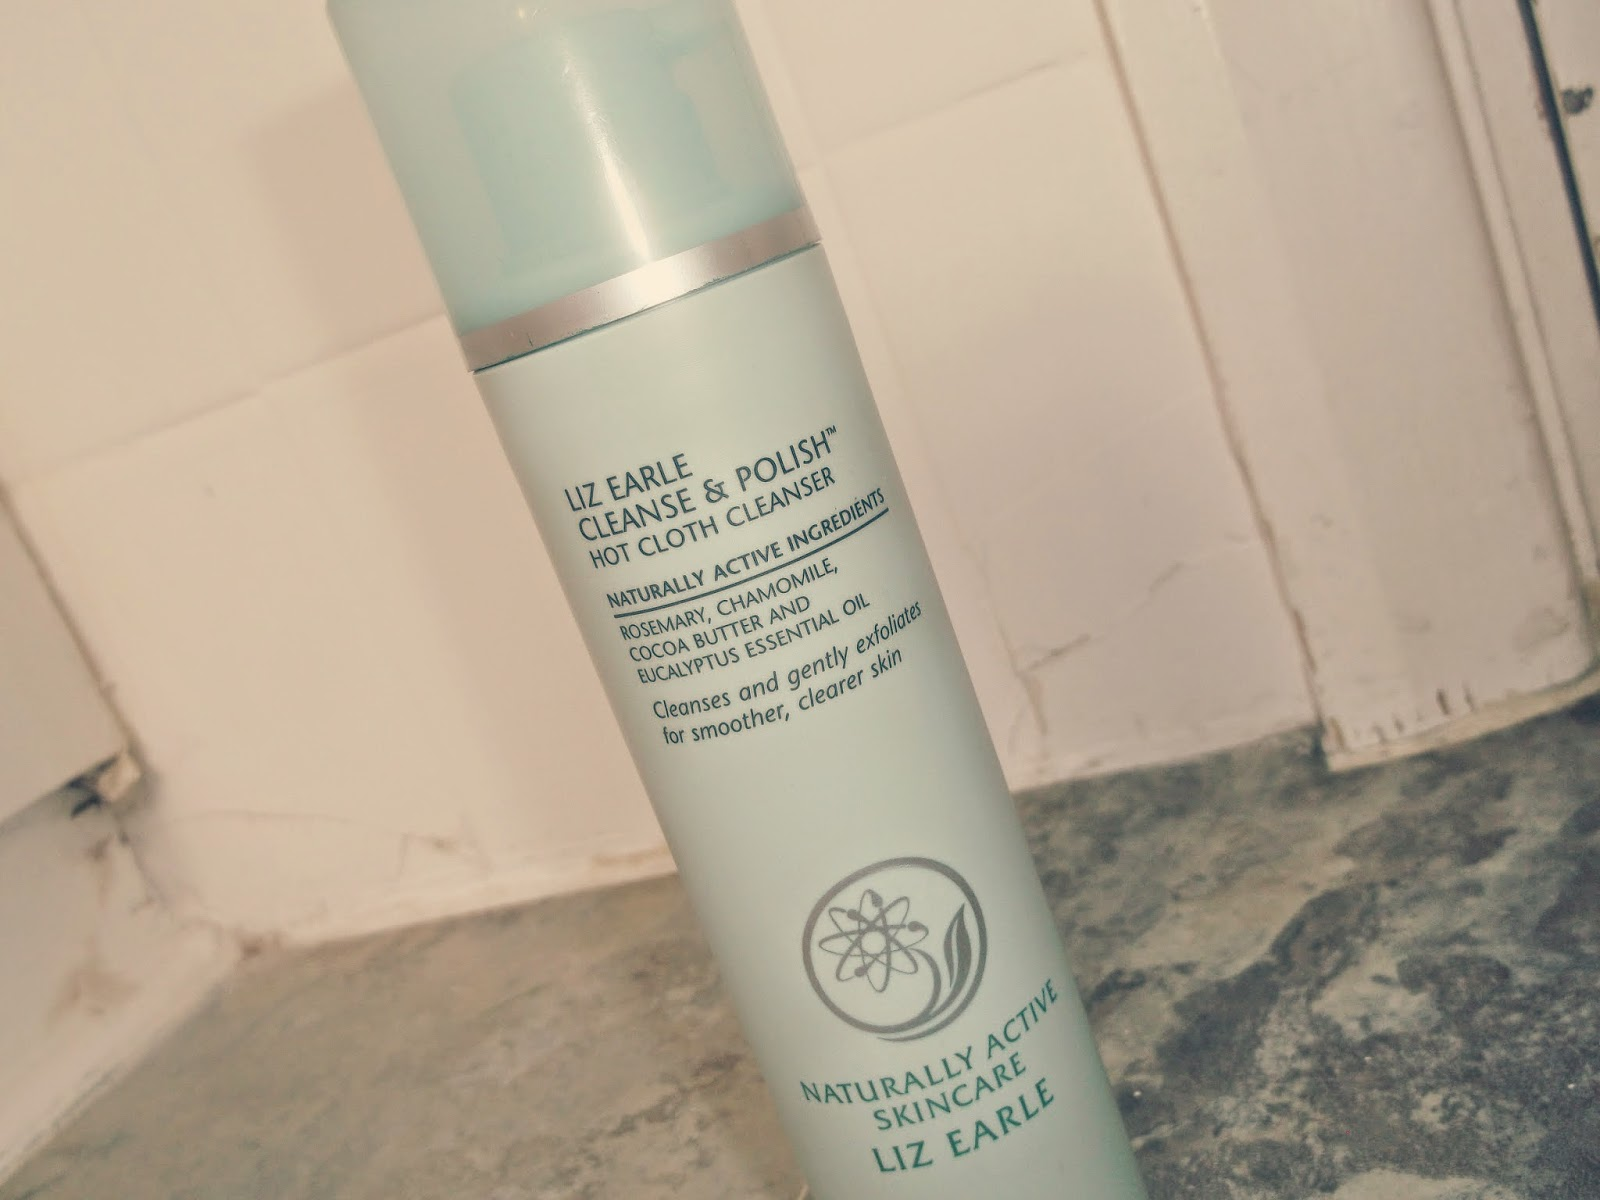 Liz Earle Cleanse & Polish Review